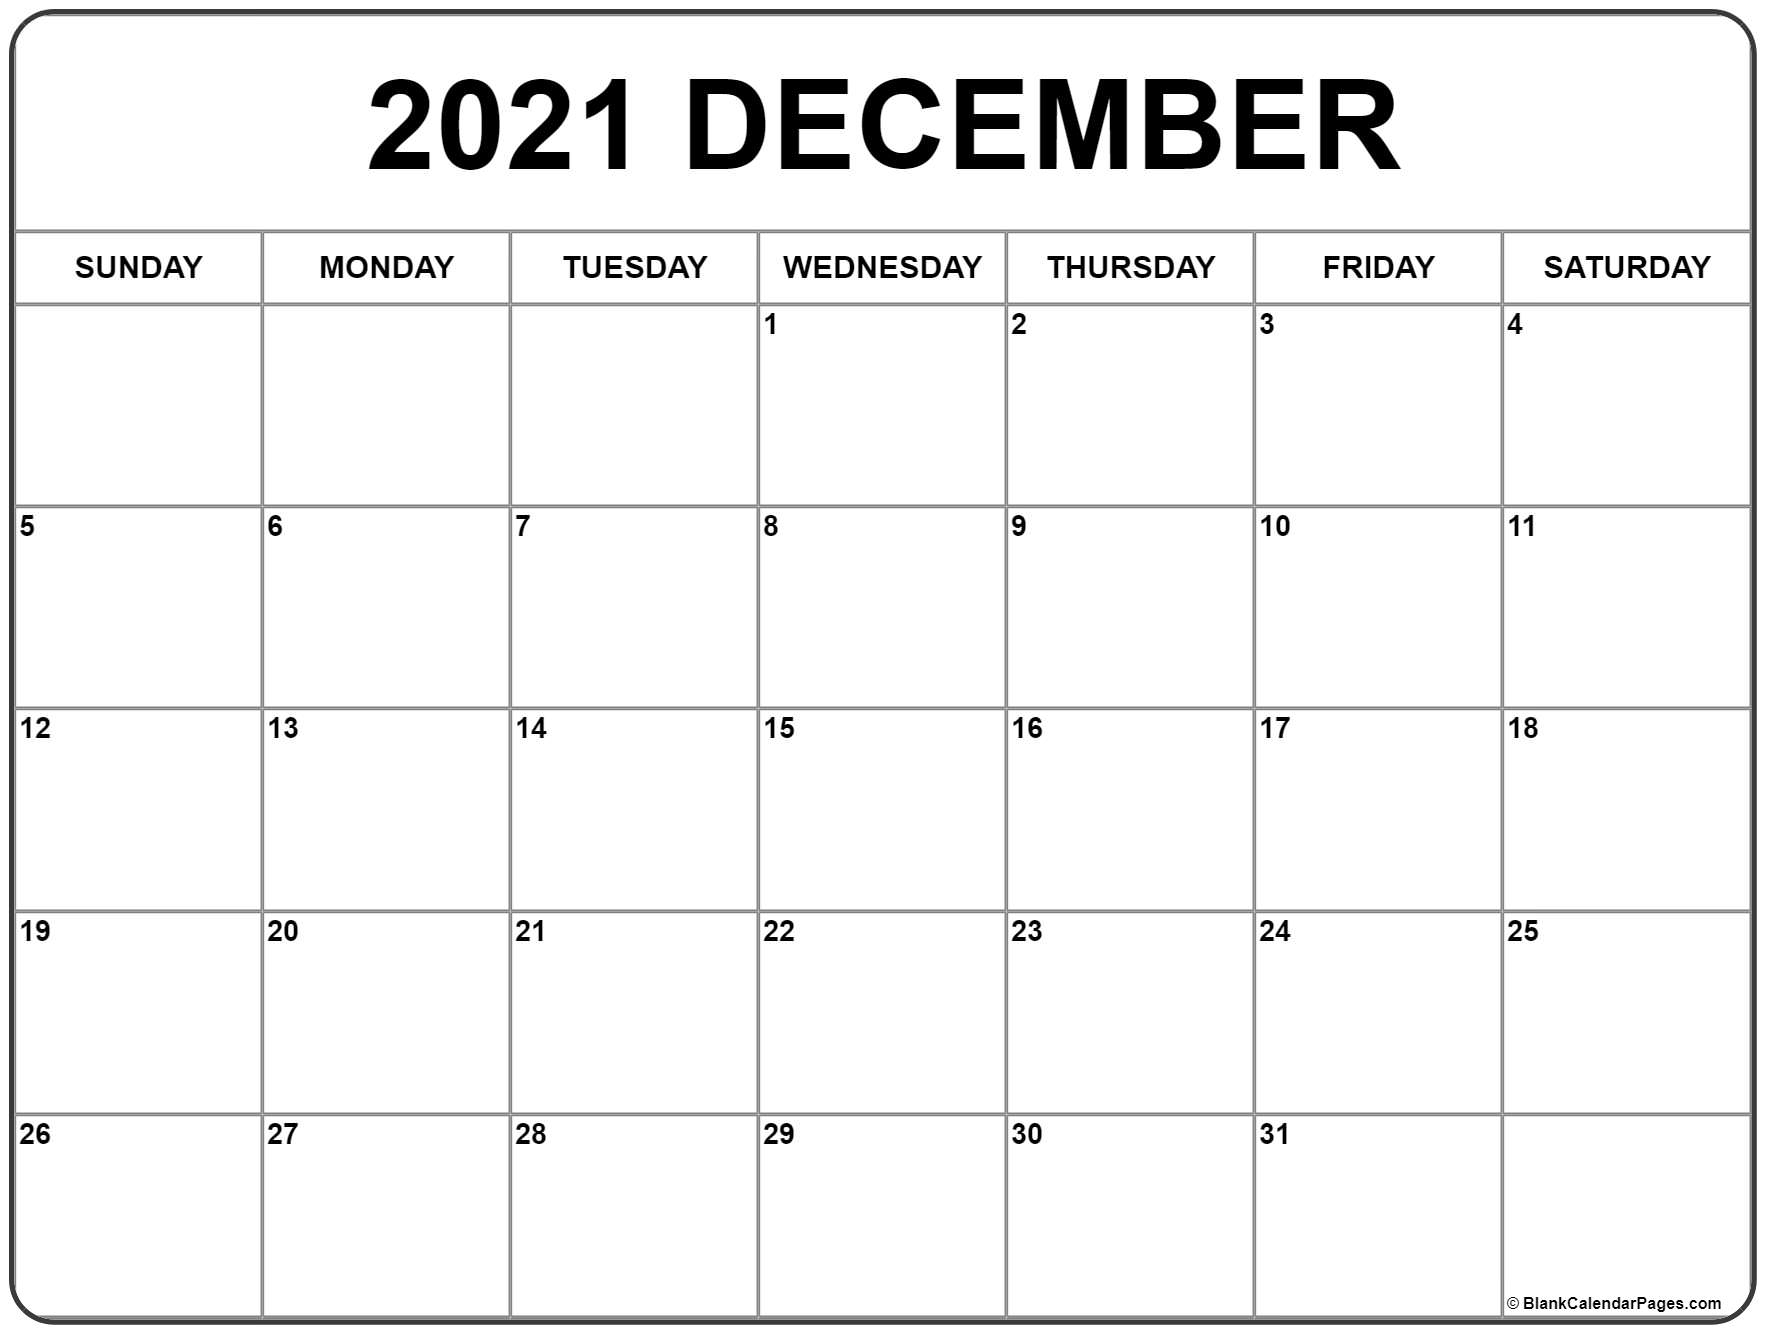 Collect December Calendar Page 2021